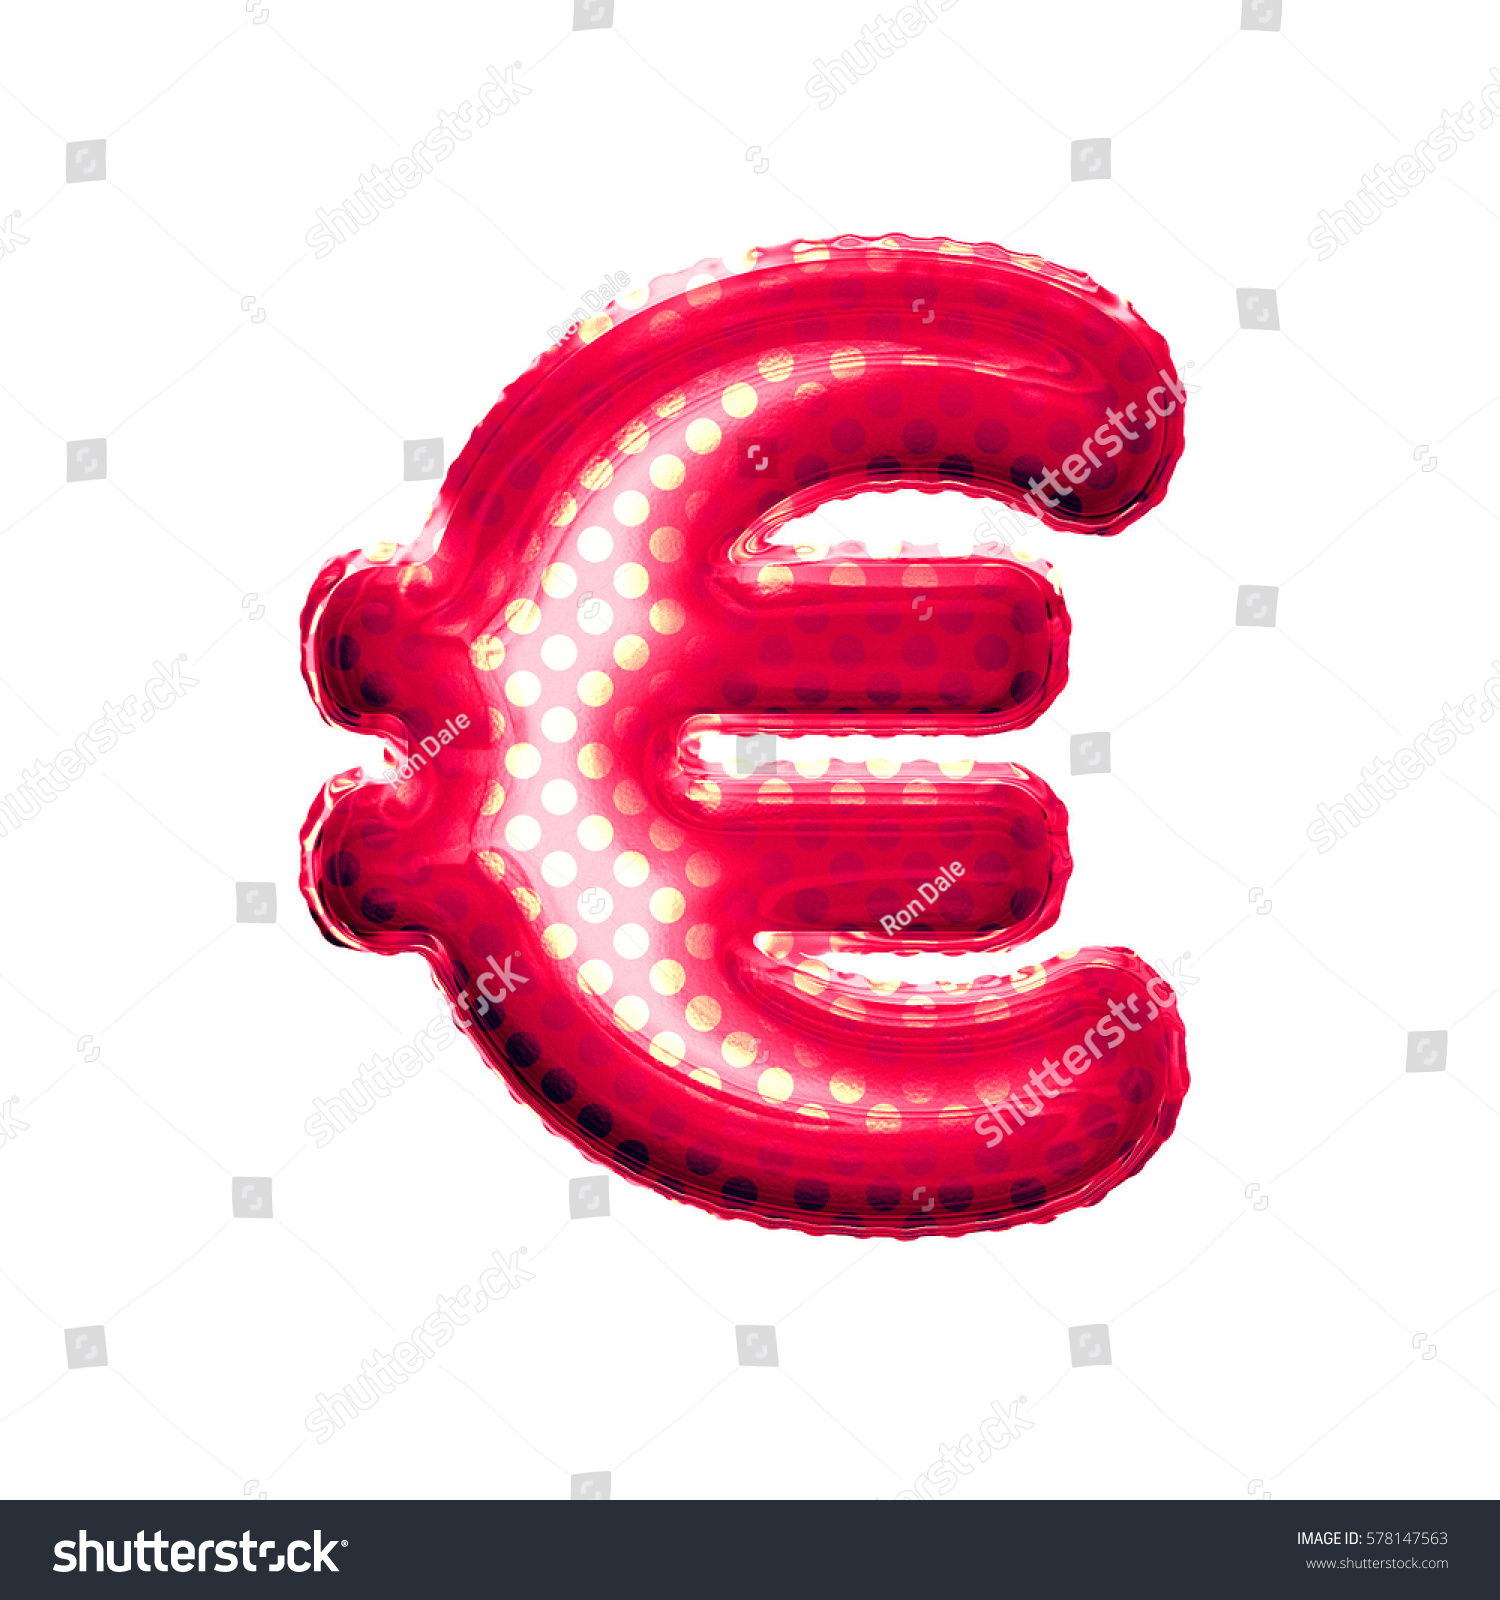 Metallic Red Gold Balloon Euro Currency Stock Illustration 578147563